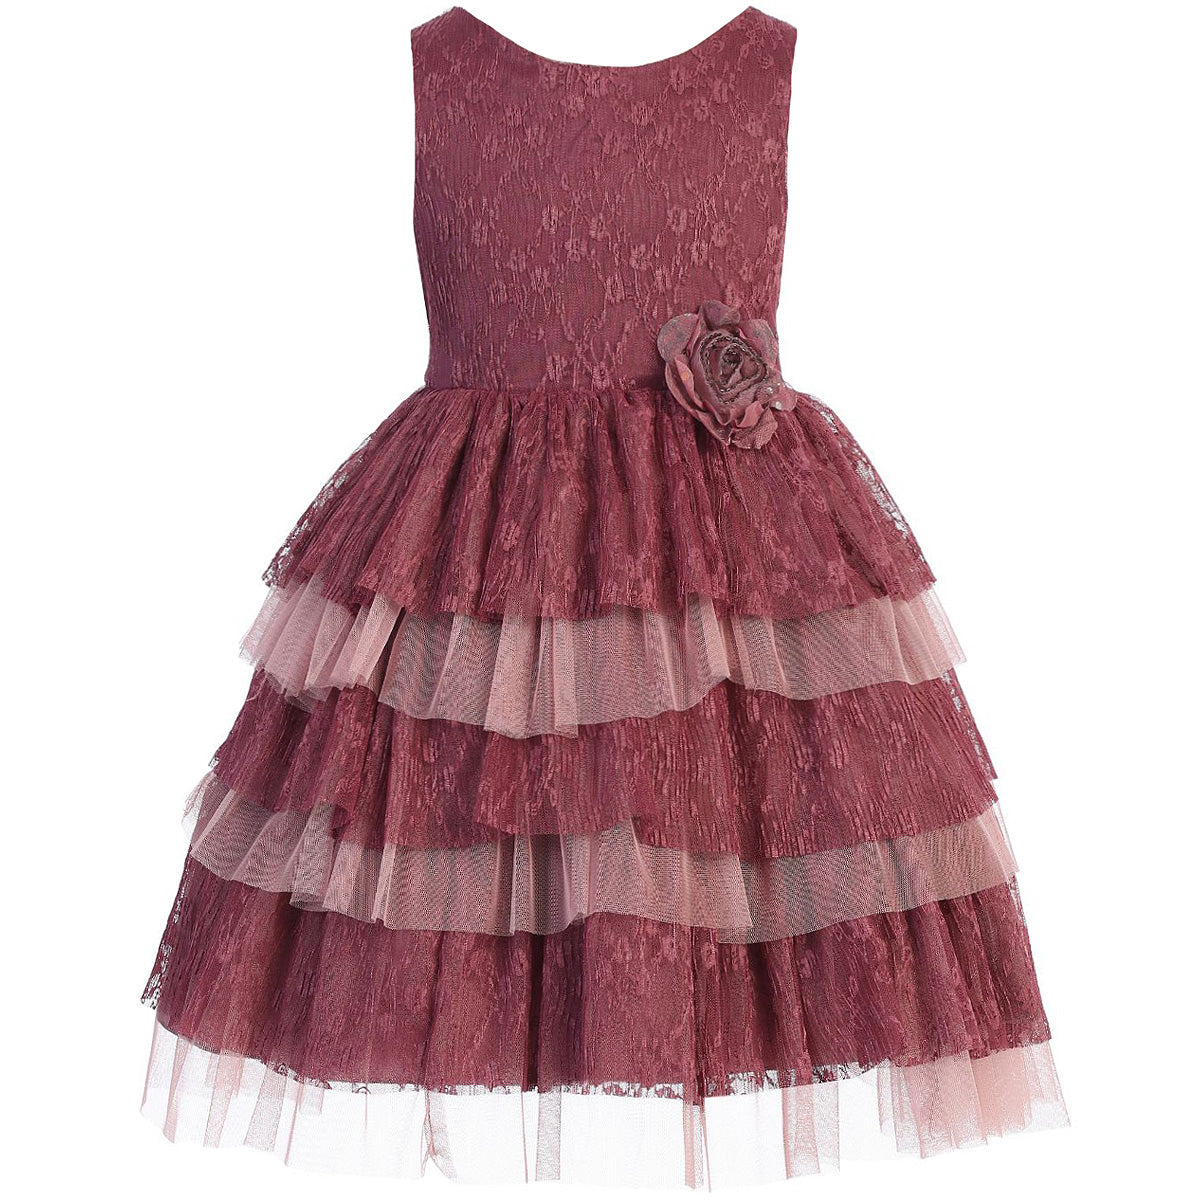 Tiered Layered Full Lace and Tulle with Waist Flower Pin Girl Dress